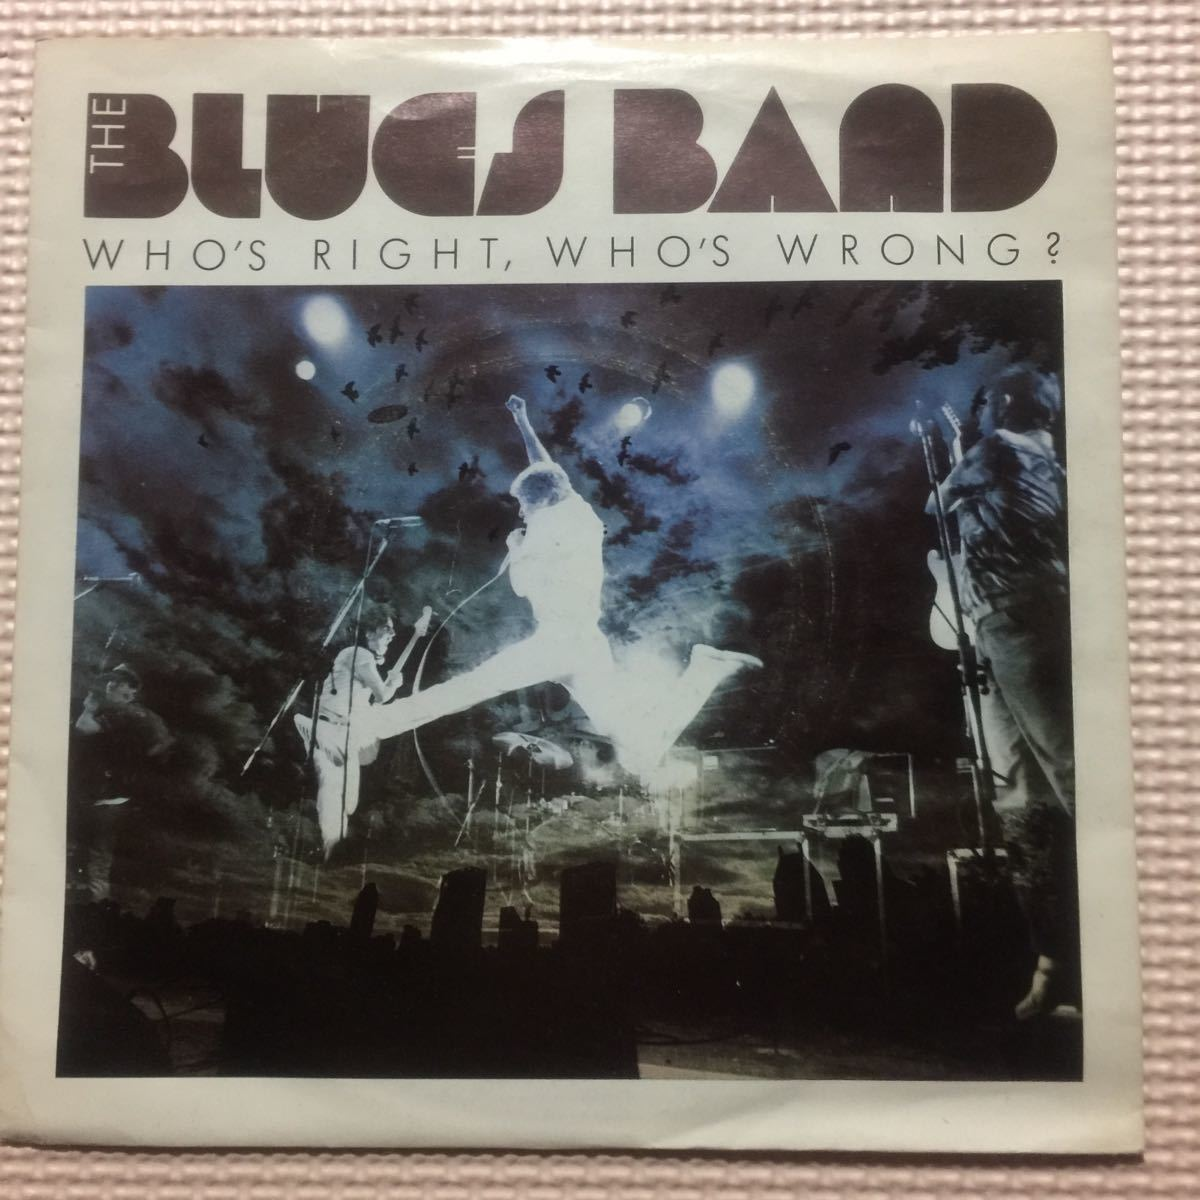 The Blues Band Who's Right, Who's Wrong? UK盤7インチシングル・レコード